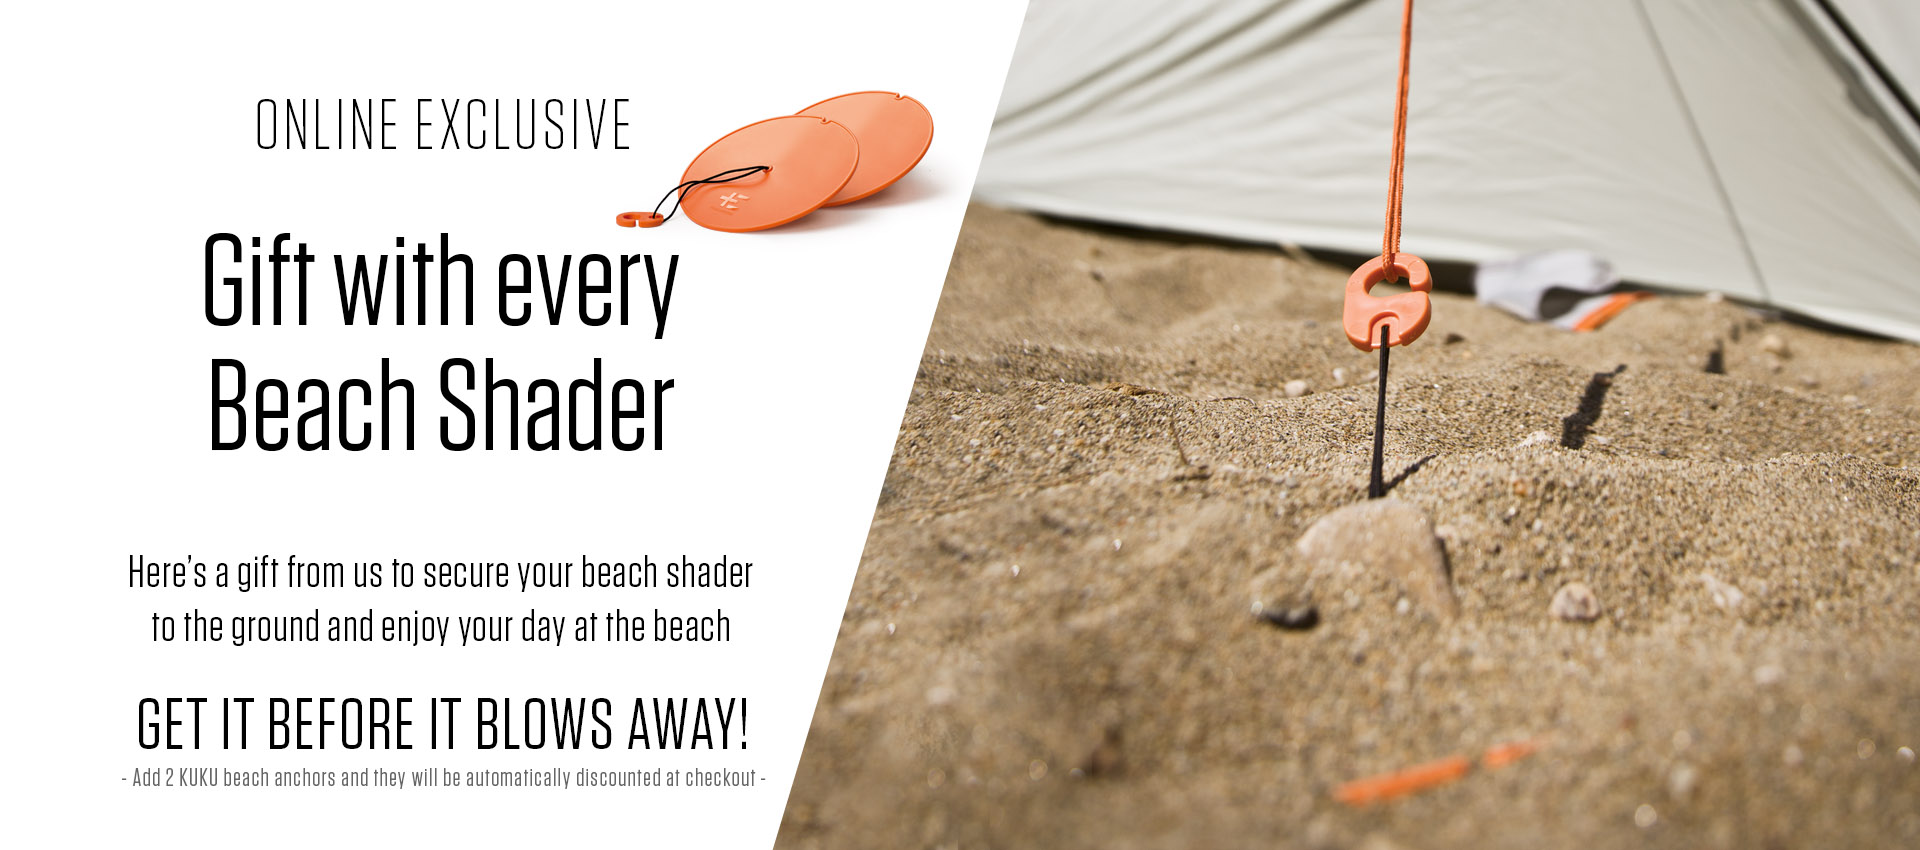 With every Beach Shader get 2 KUKU beach anchors free